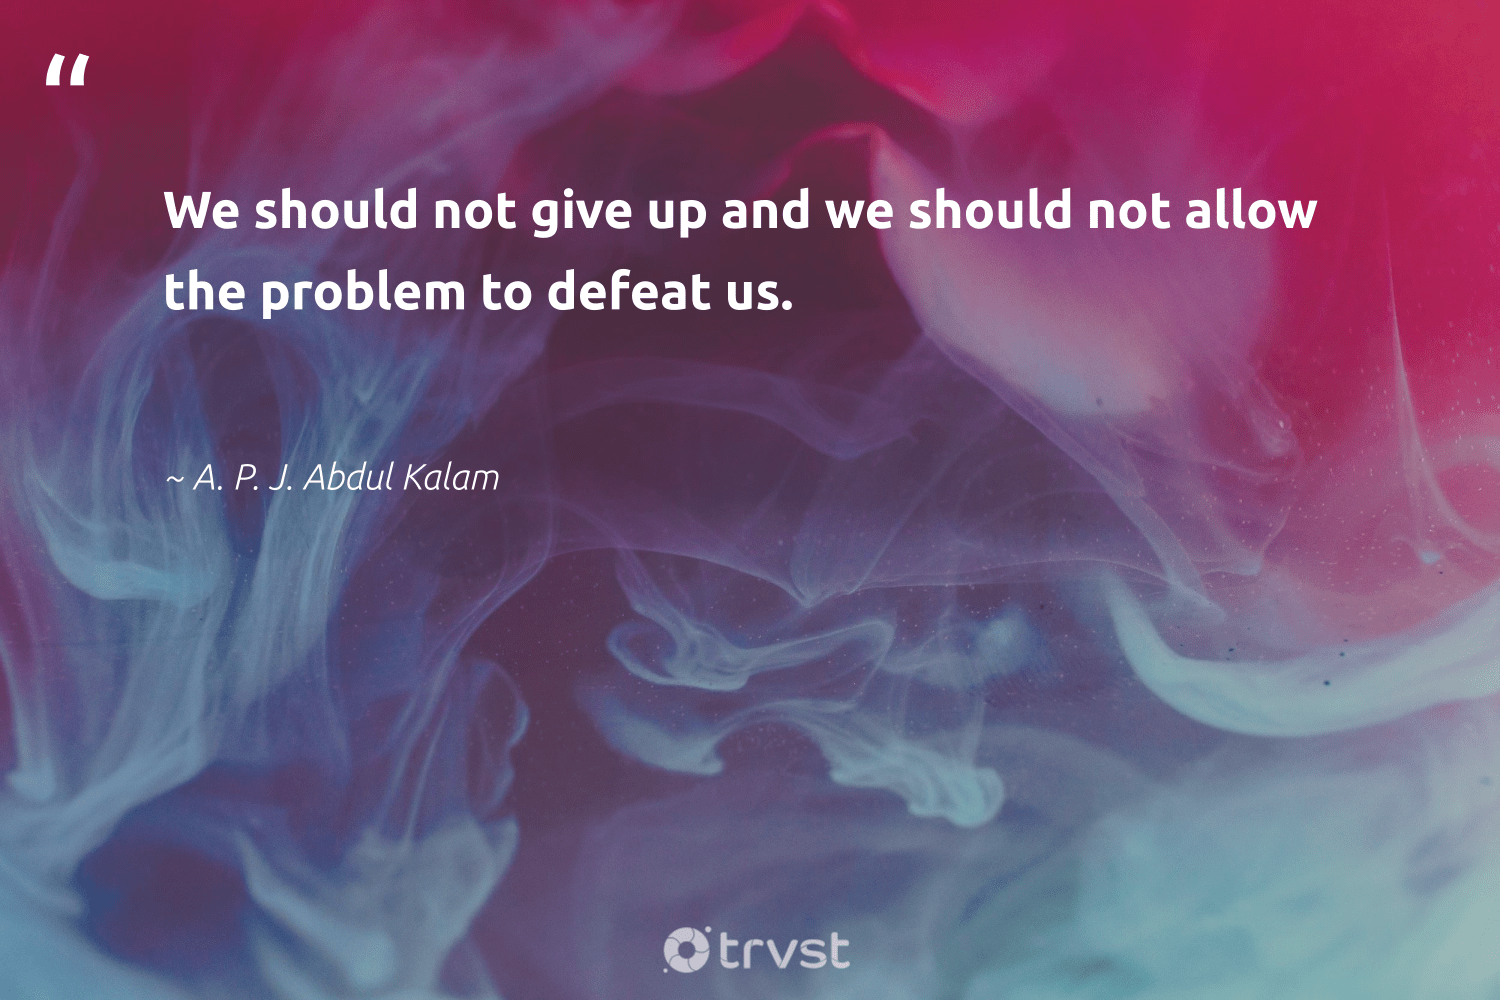 """""""We should not give up and we should not allow the problem to defeat us.""""  - A. P. J. Abdul Kalam #trvst #quotes #nevergiveup #thinkgreen #futureofwork #planetearthfirst #begreat #beinspired #softskills #dosomething #ecoconscious #impact"""